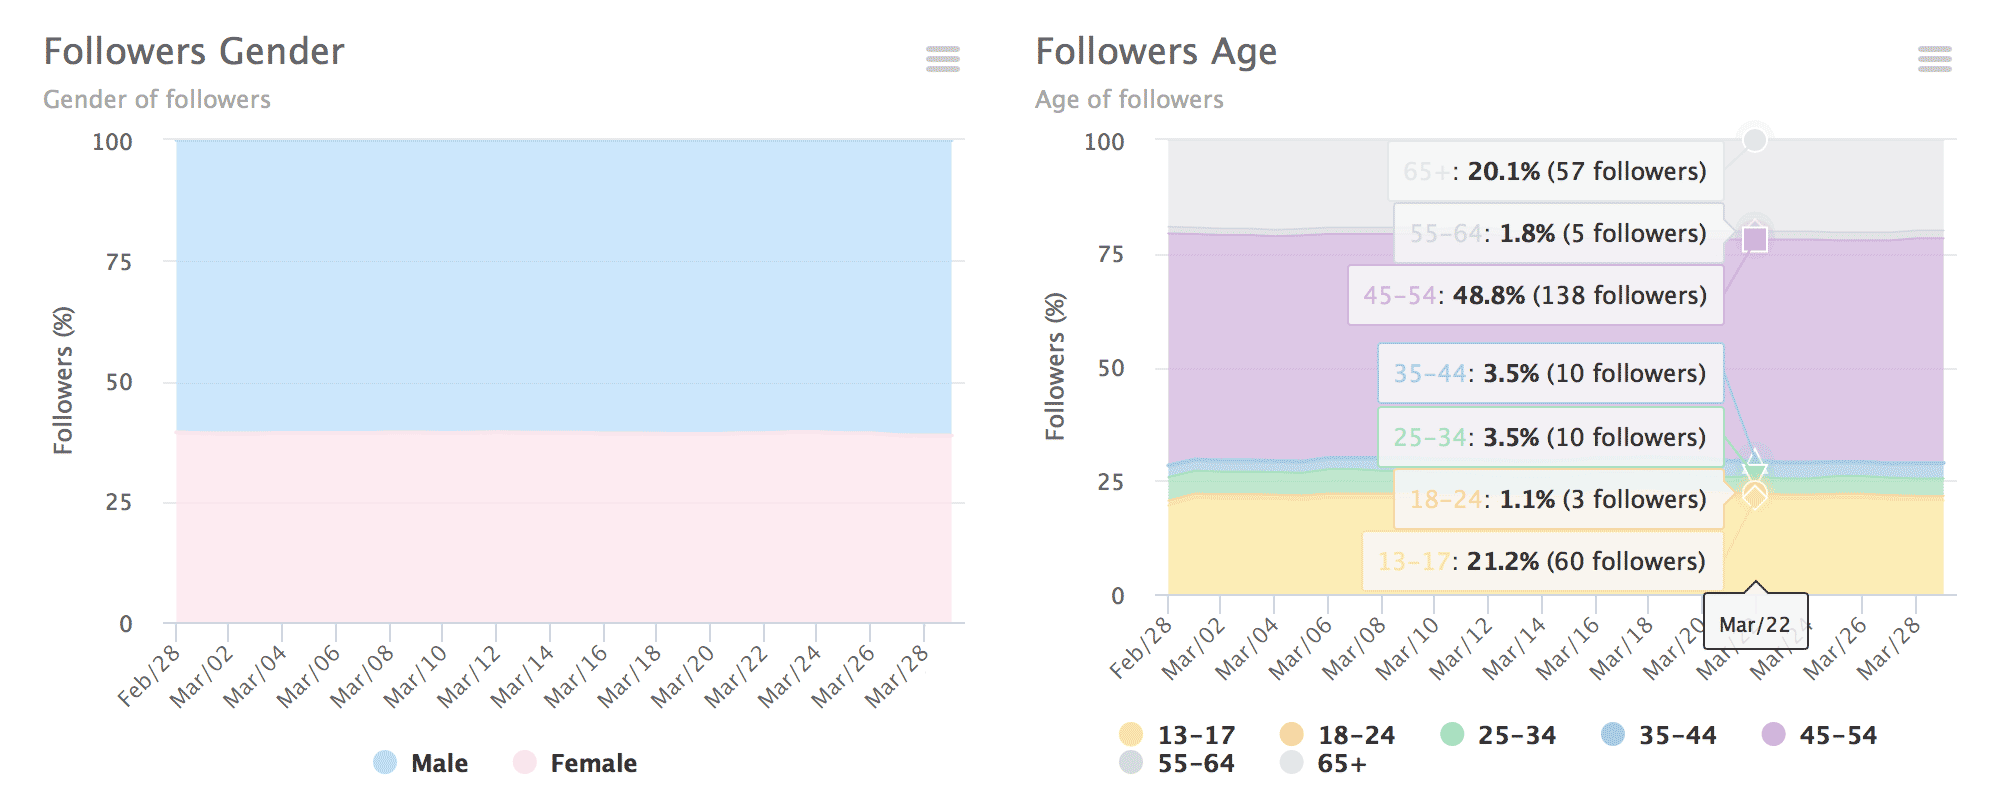 Followers gender and age